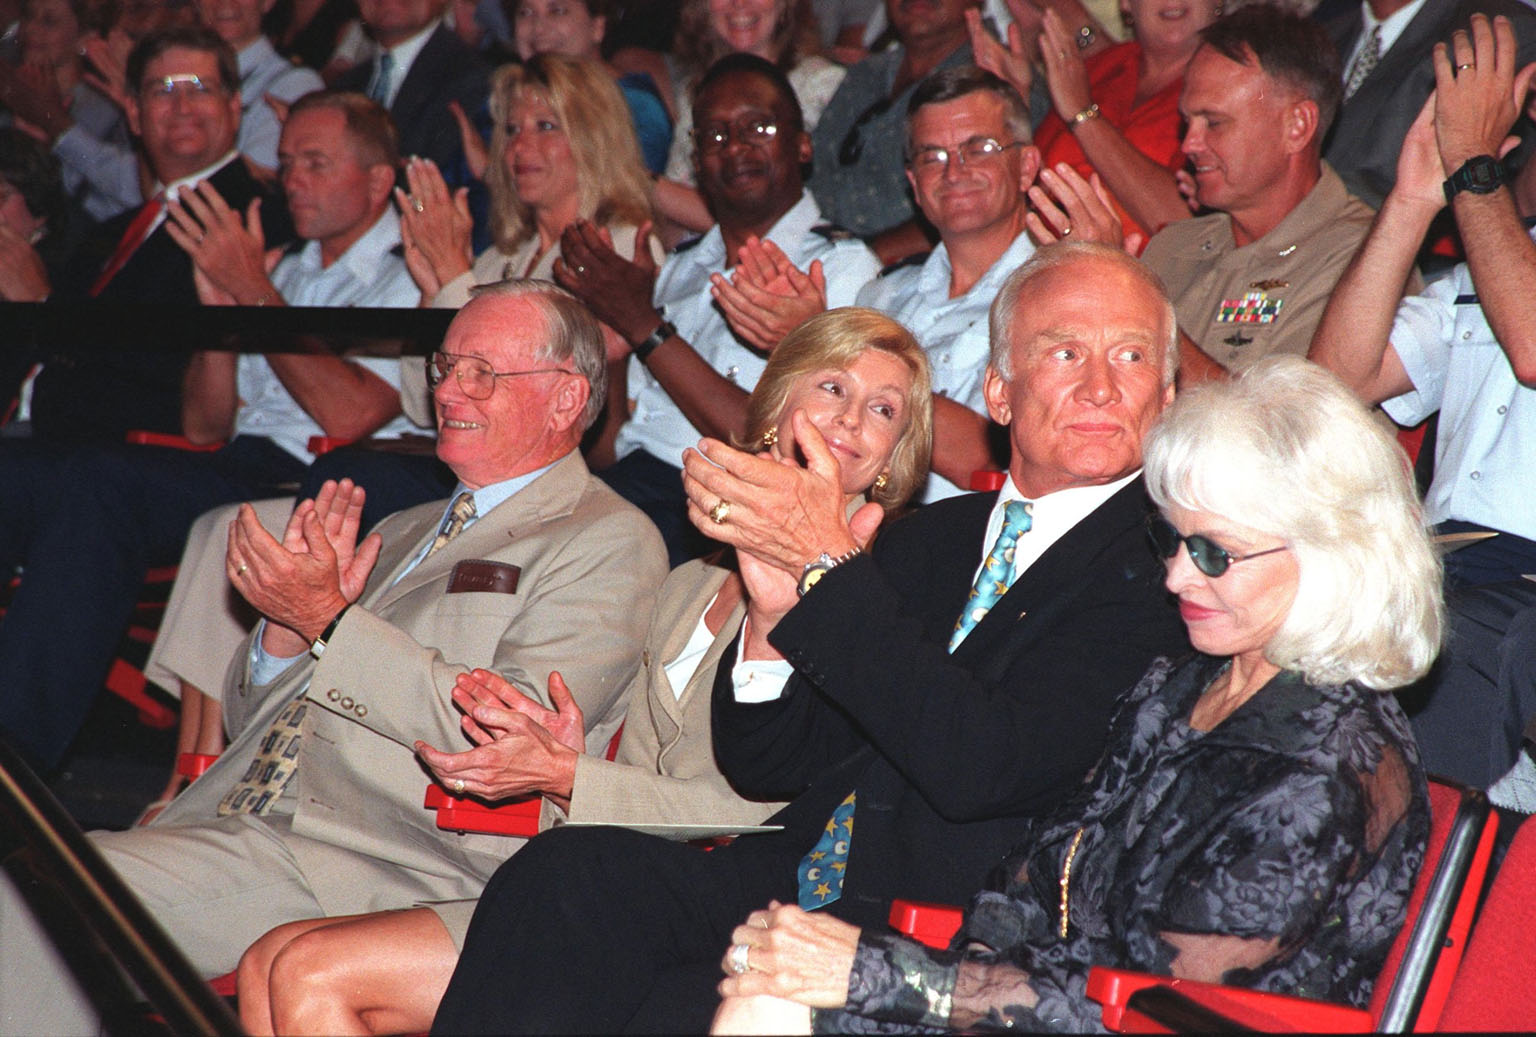 """At a special presentation of the Hammer Award in the IMAX 2 Theater in the Kennedy Space Center Visitor Complex, former Apollo astronauts Neil Armstrong (left) and Edwin """"Buzz"""" Aldrin (second from right) applauded the recipients, Kennedy Space Center and the 45th Space Wing. The Hammer Award is Vice President Al Gore's special recognition of teams of federal employees who have made significant contributions in support of the principles of the National Partnership for Reinventing Government. This Hammer Award acknowledges the accomplishments of a joint NASA and Air Force team that established the Joint Base Operations and Support Contract (J-BOSC) Source Evaluation Board (SEB). Ed Gormel and Chris Fairey, co-chairs of the SEB, accepted the awards for the SEB. The team developed and implemented the acquisition strategy for establishing a single set of base operations and support service requirements for KSC, Cape Canaveral Air Station and Patrick Air Force Base. Armstrong and Aldrin were at KSC to attend a banquet and other activities for the 30th anniversary of the Apollo 11 mission, which landed the first man on the moon"""